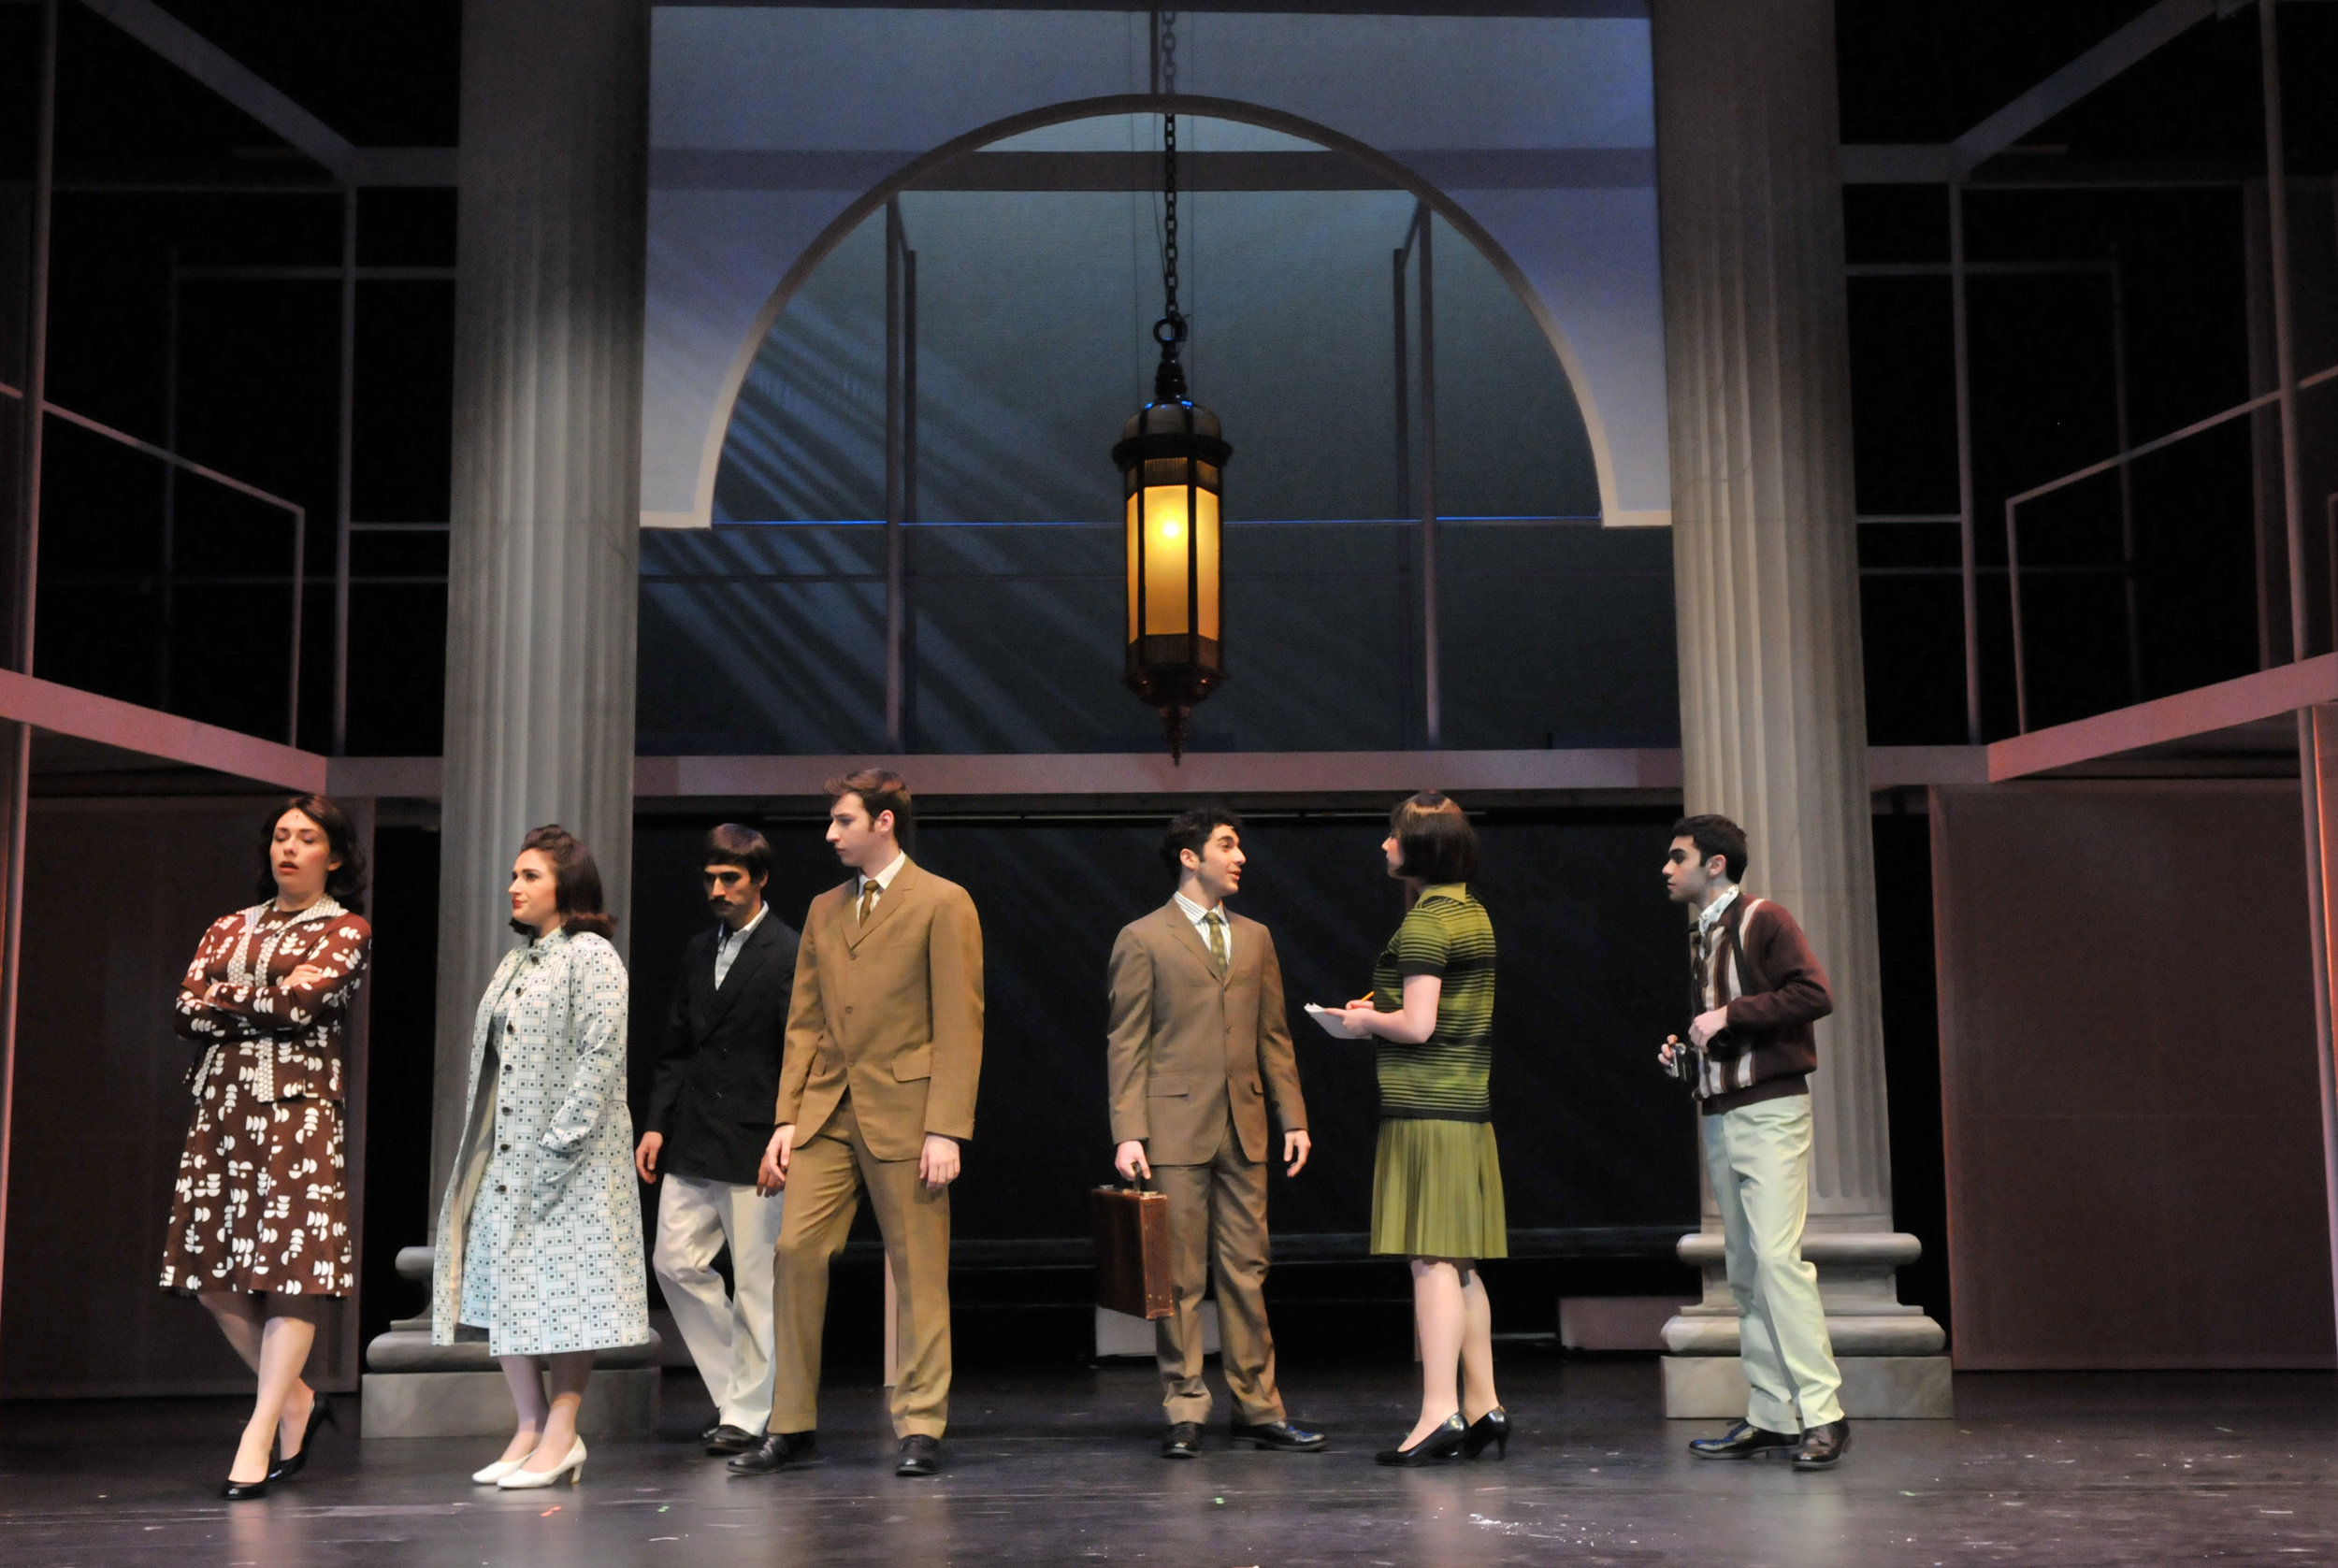 emerson-stage---merrily-we-roll-along_16750931573_o.jpg